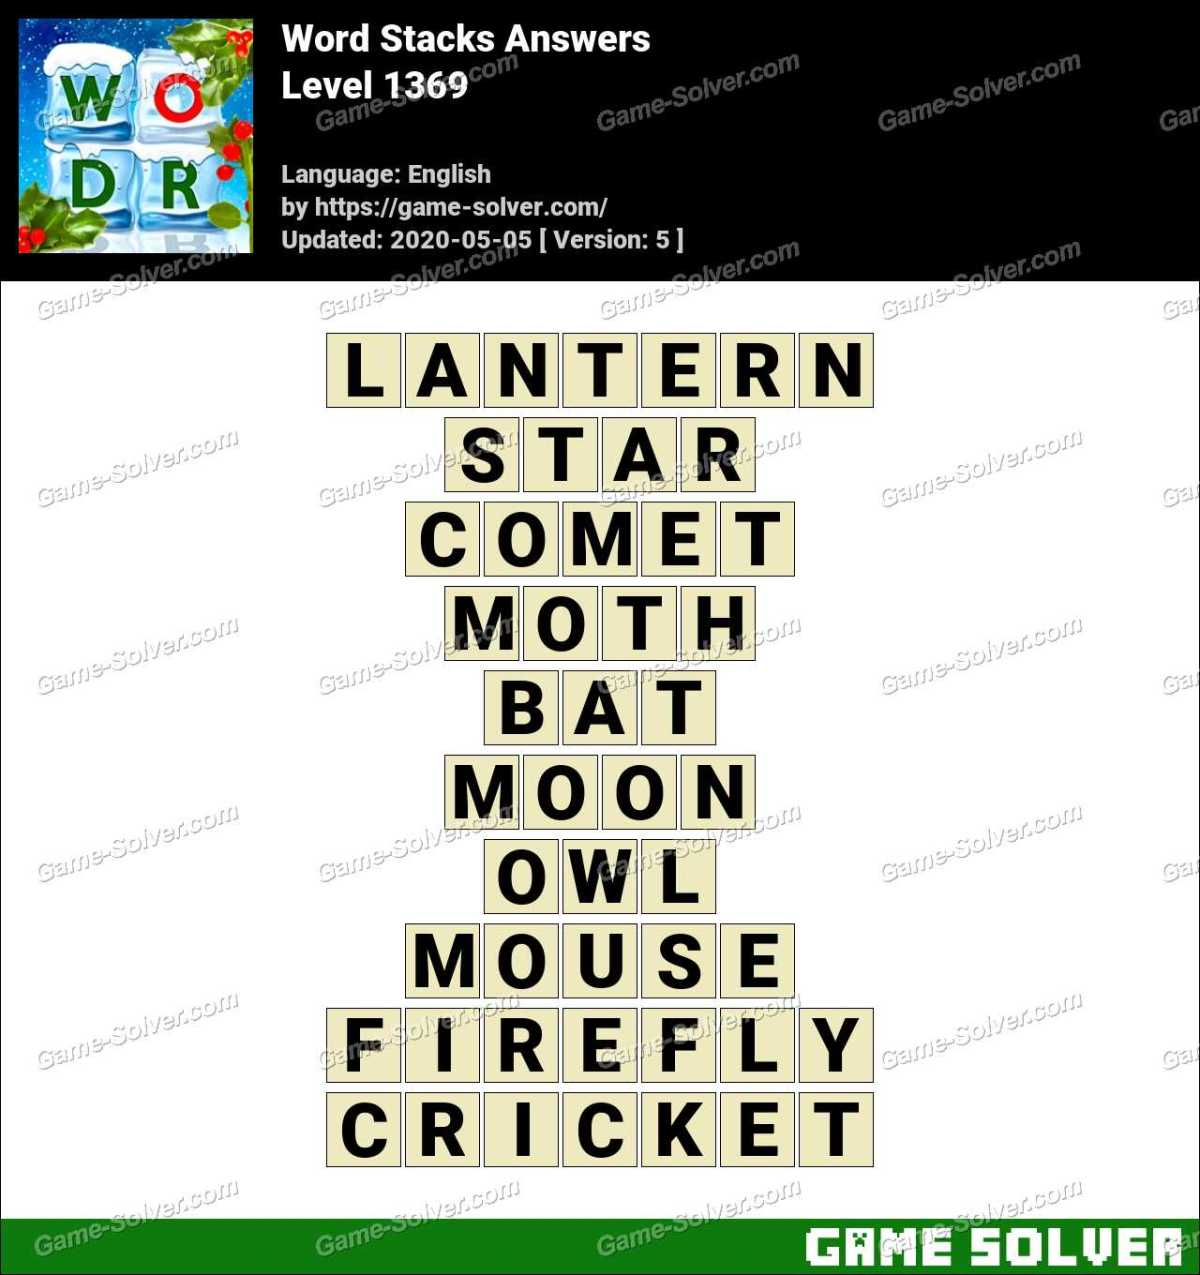 Word Stacks Level 1369 Answers